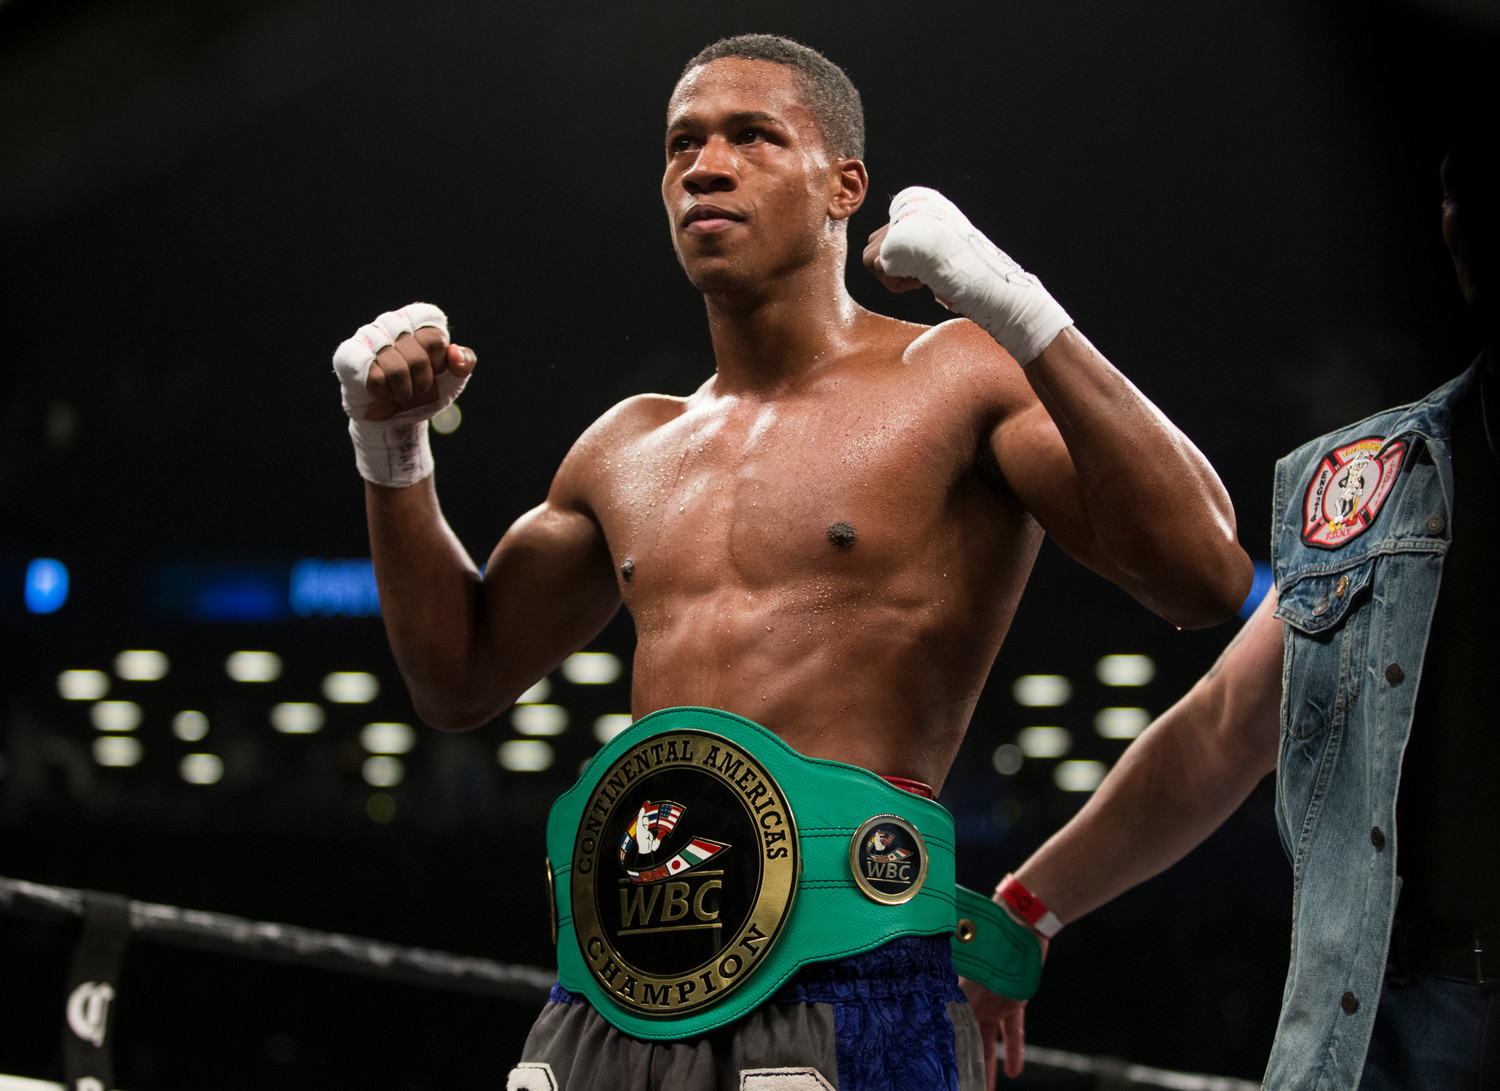 Boxer Patrick Day, 25, successfully defended his WBC Continental Americas Super Welterweight title against Kyrone Davis, at the Barclays Center in Brooklyn on March 3.